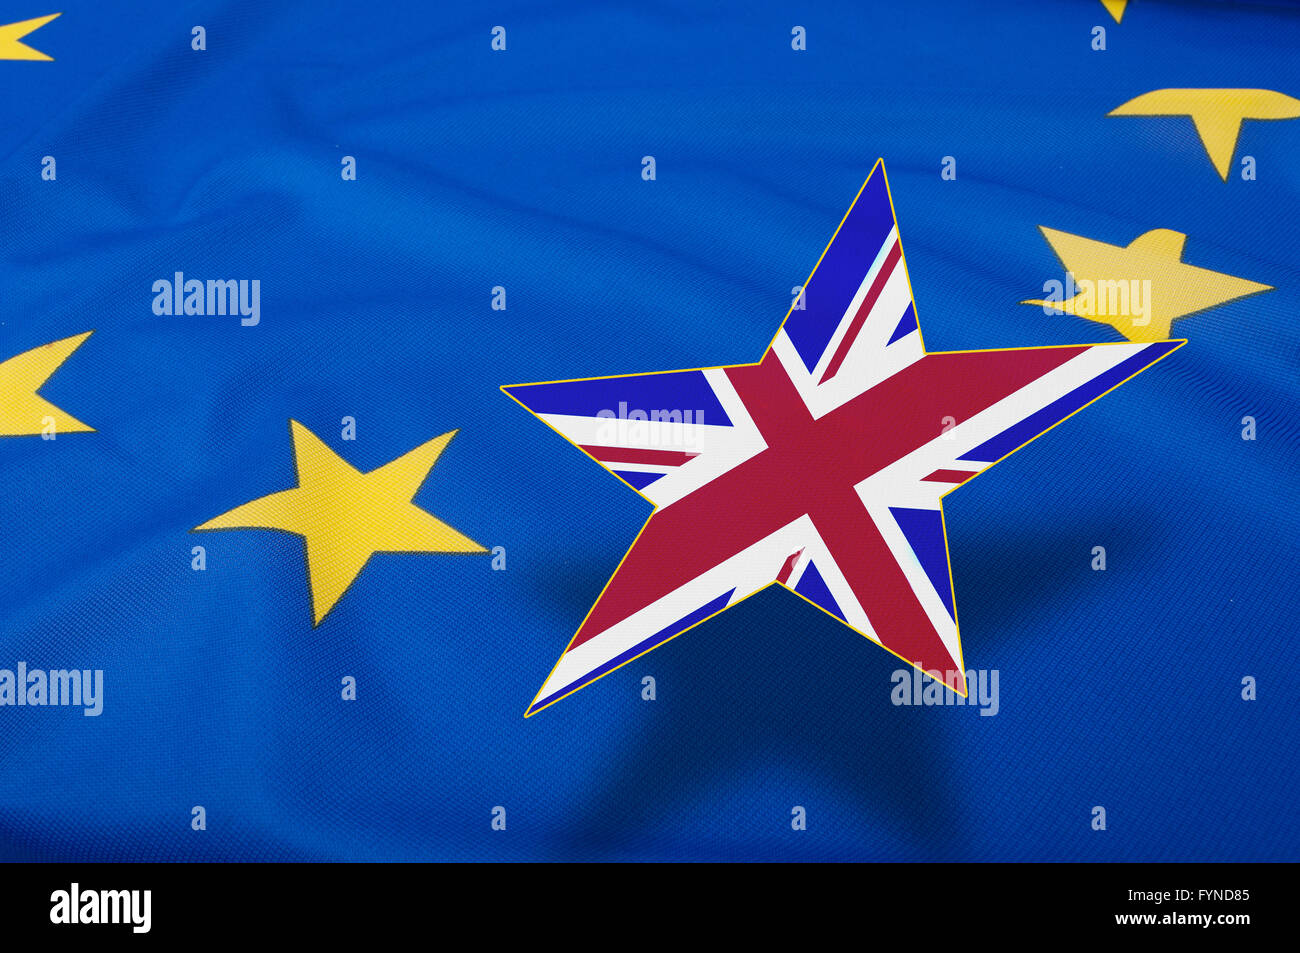 Brexit – European Union Flag Drapery With Great Britain Leaving - Stock Image